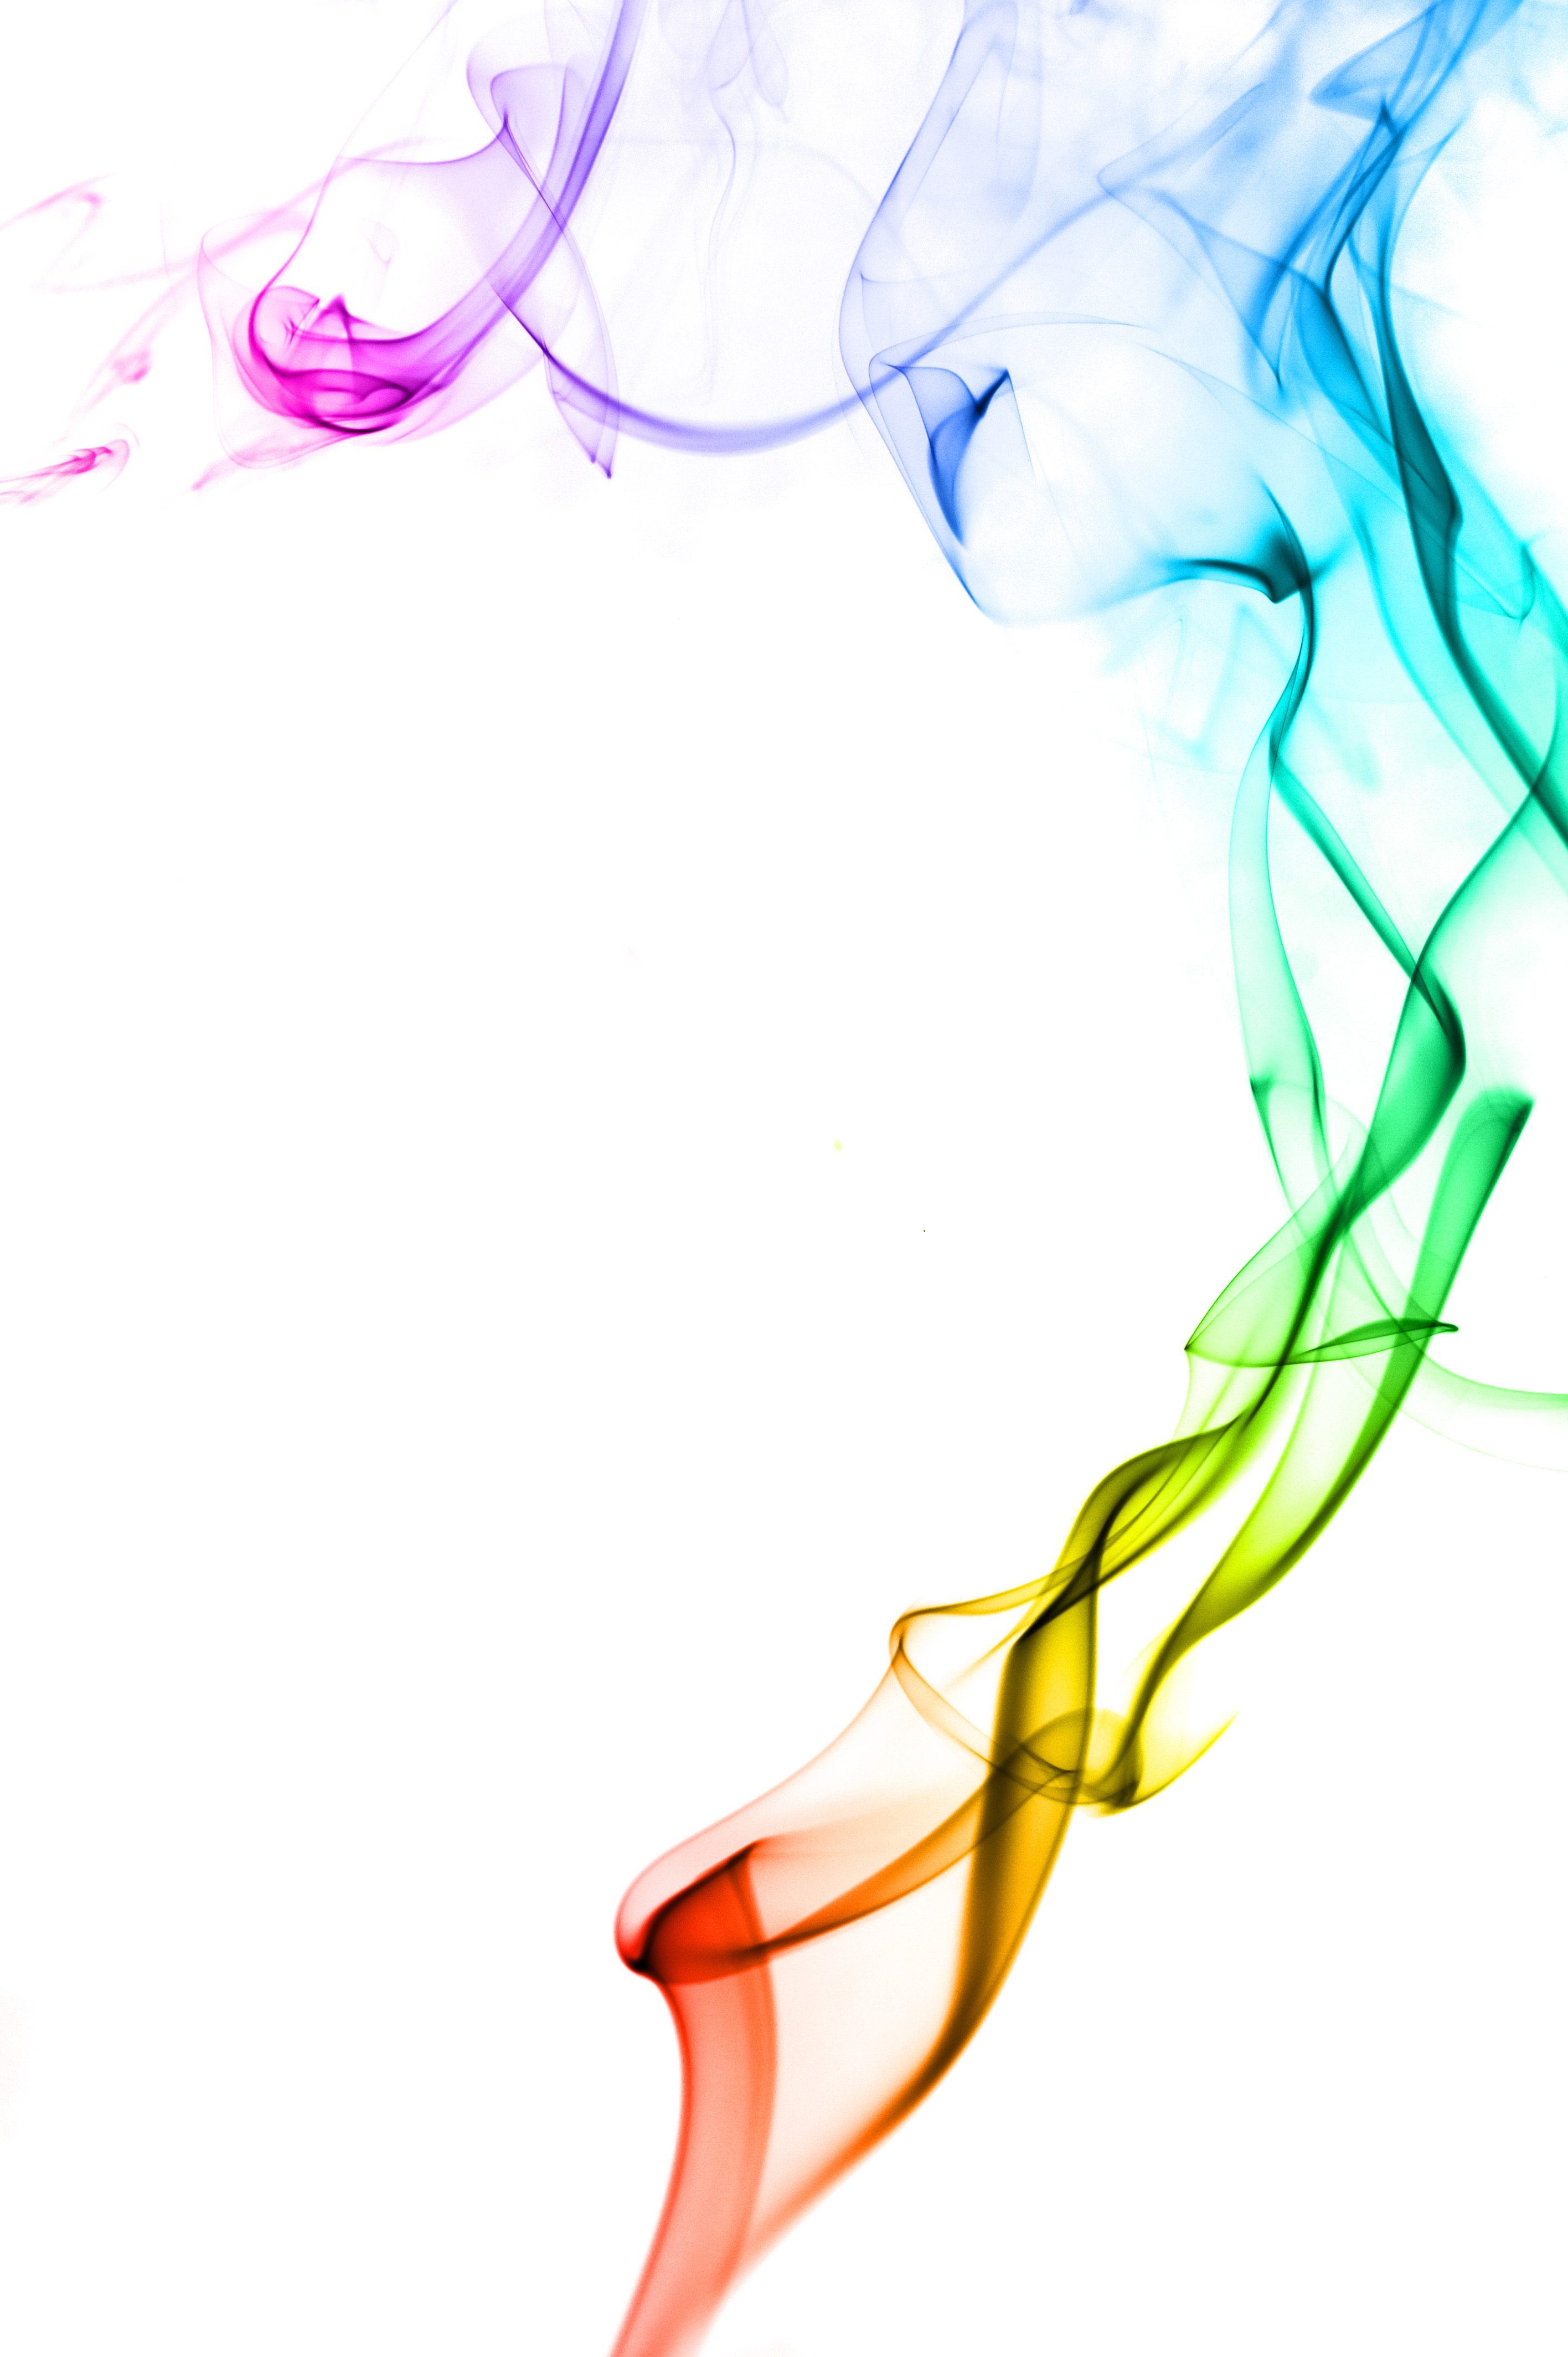 80977 download wallpaper Abstract, Multicolored, Motley, Minimalism, Smoke screensavers and pictures for free